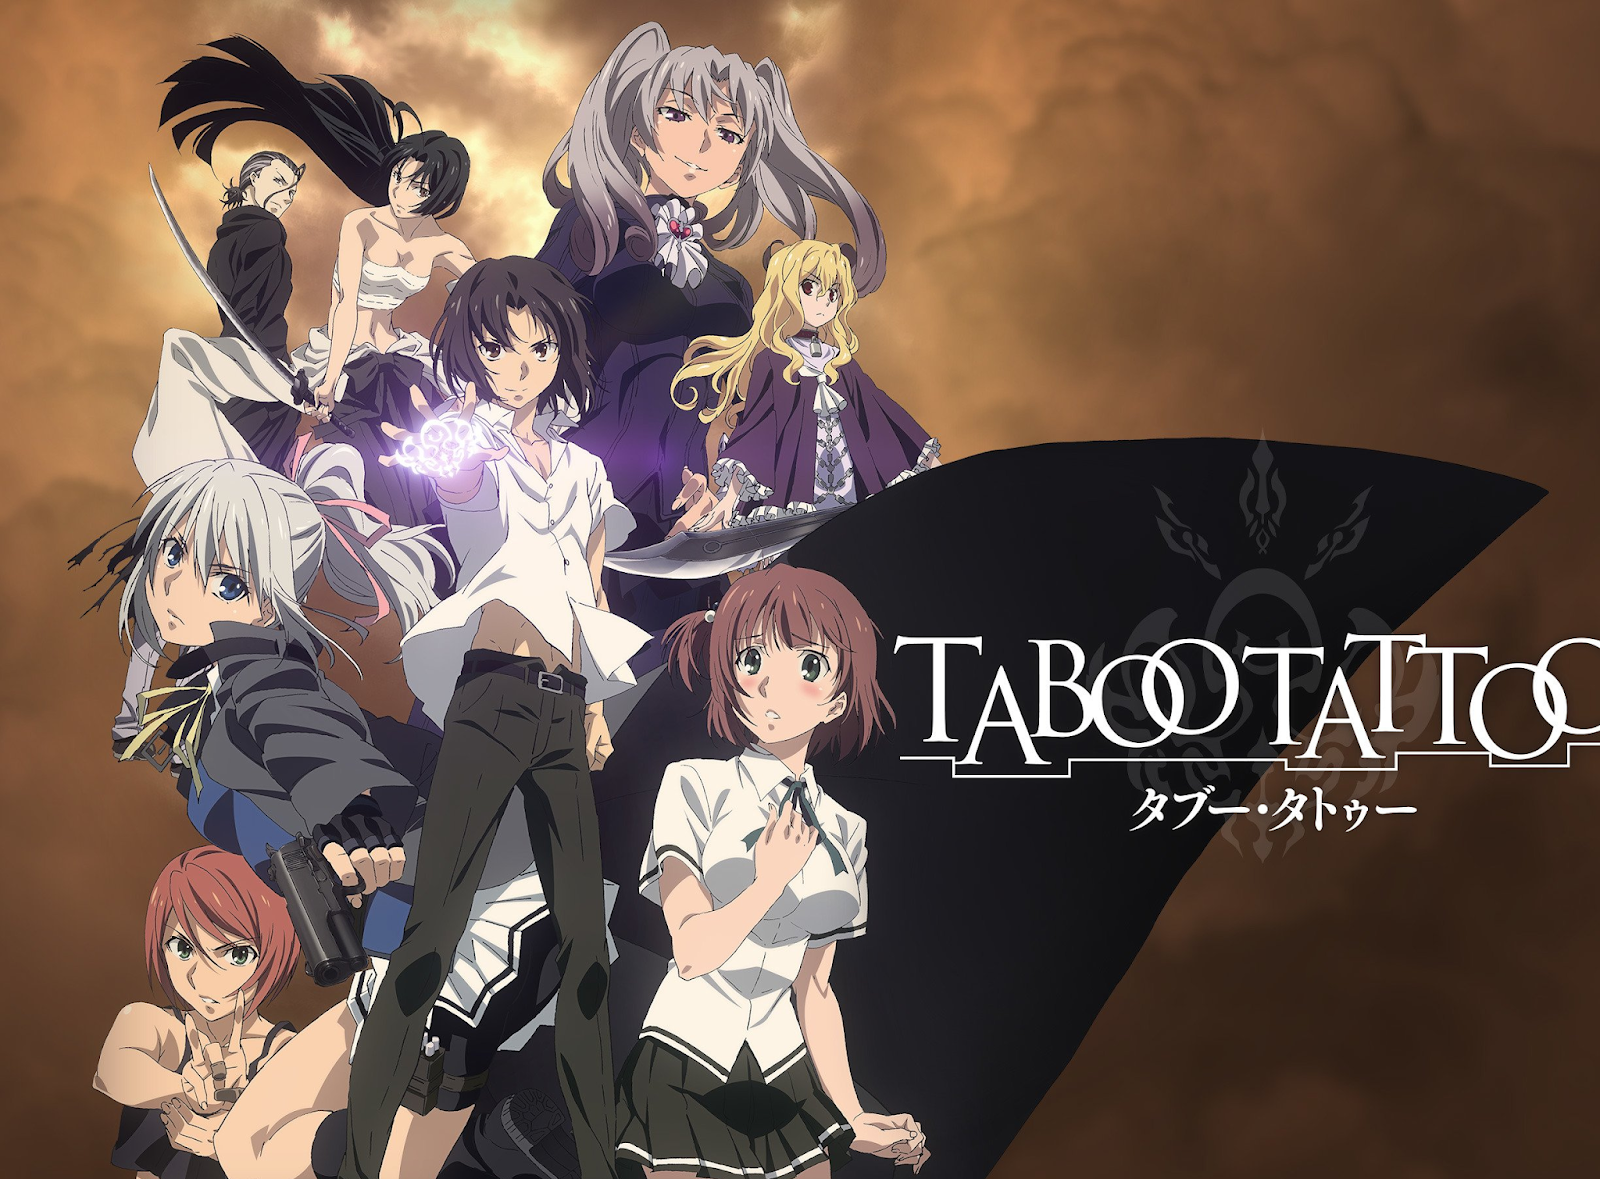 Download Taboo Tattoo BD Subtitle Indonesia